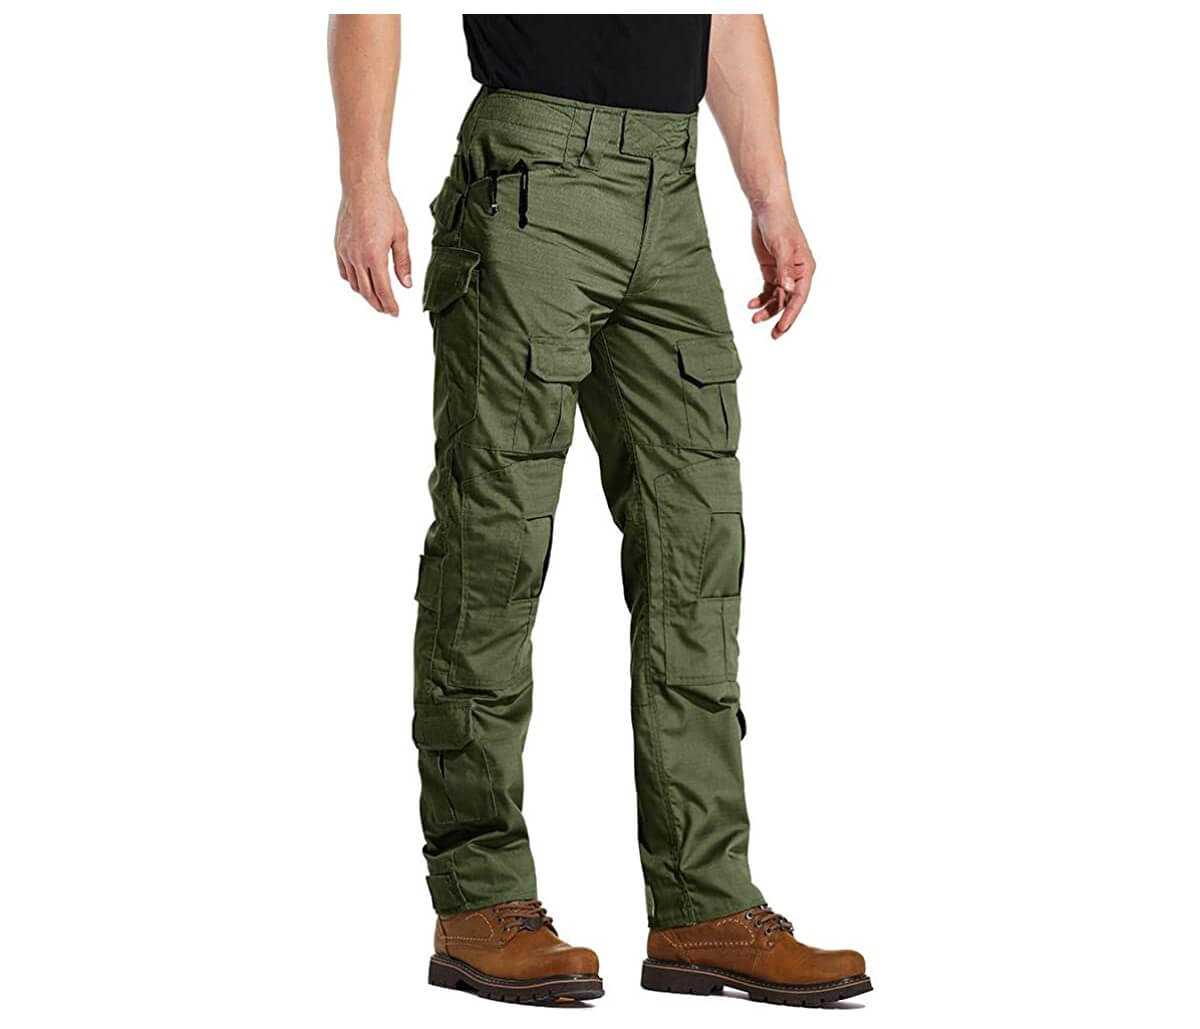 AKARMY Men's Military Tactical Pants